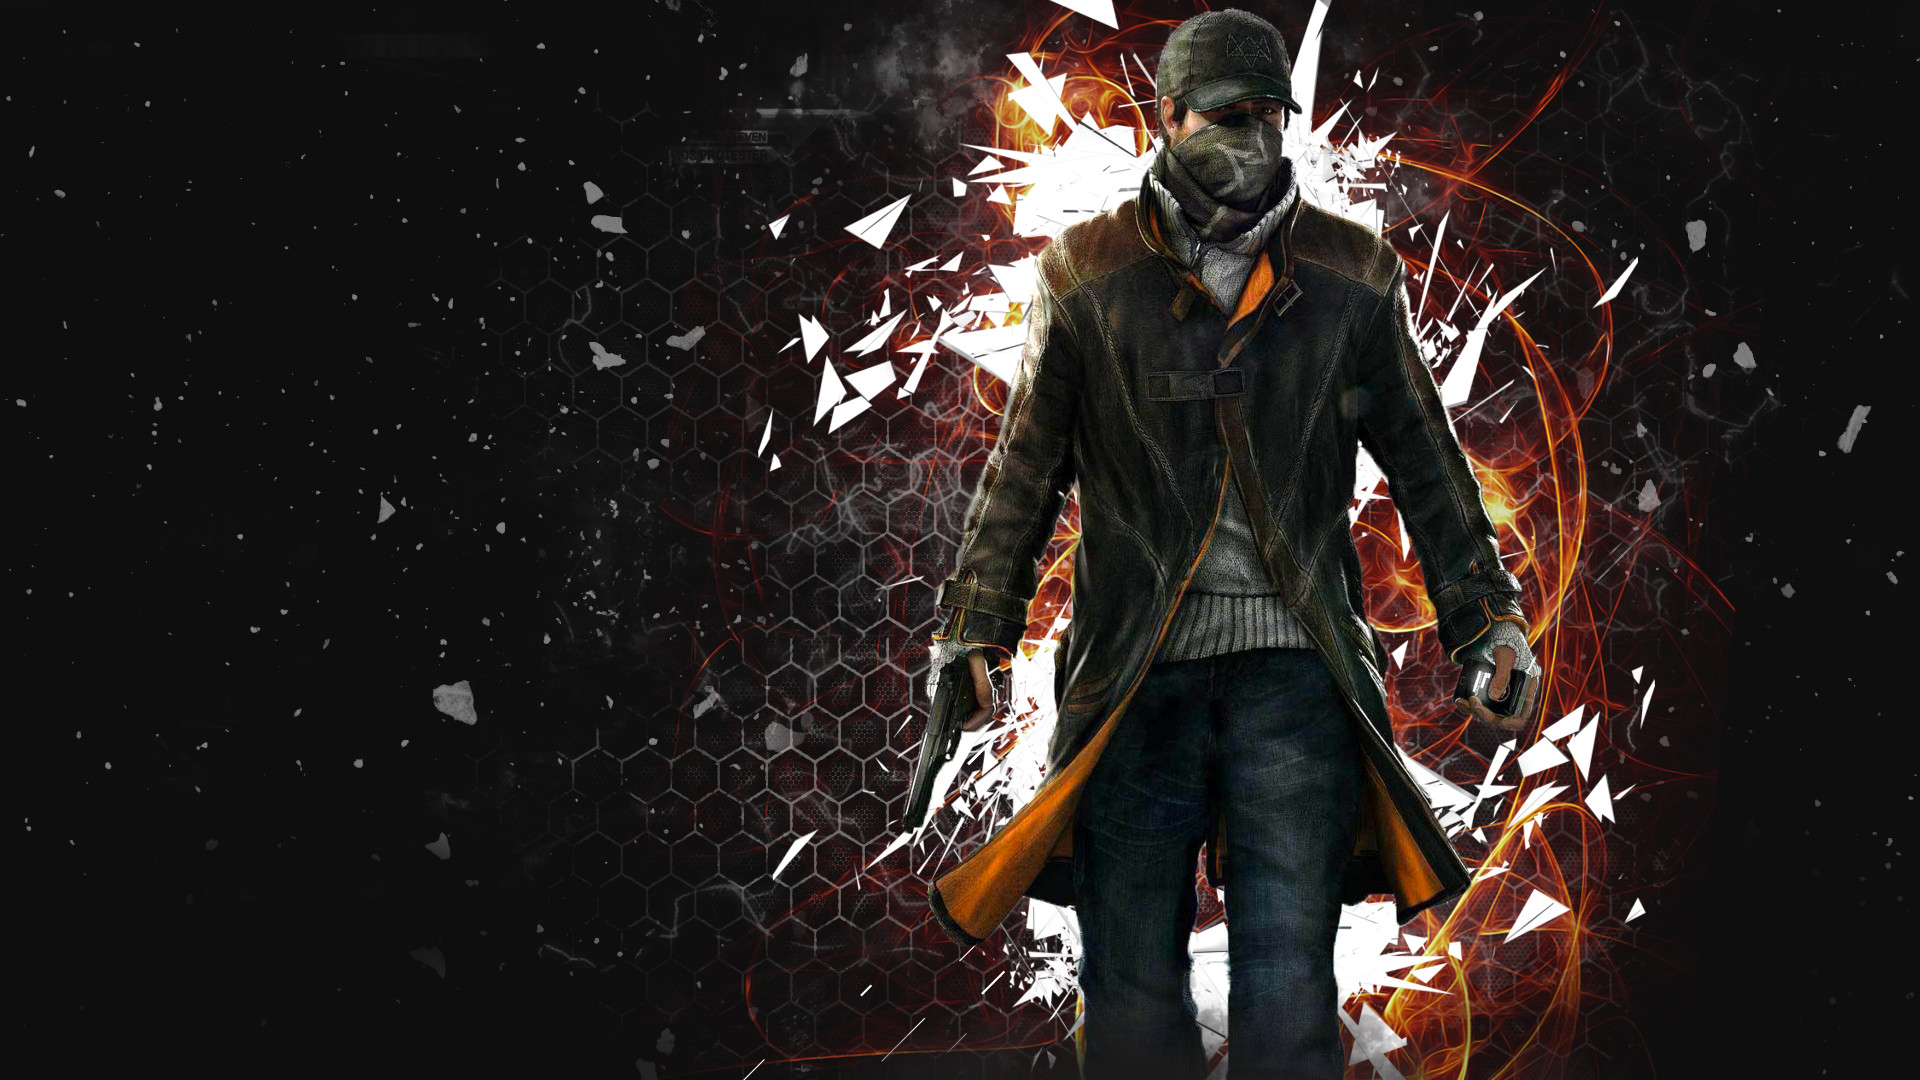 1920x1080 Watch Dogs Background Wallpaper 17082